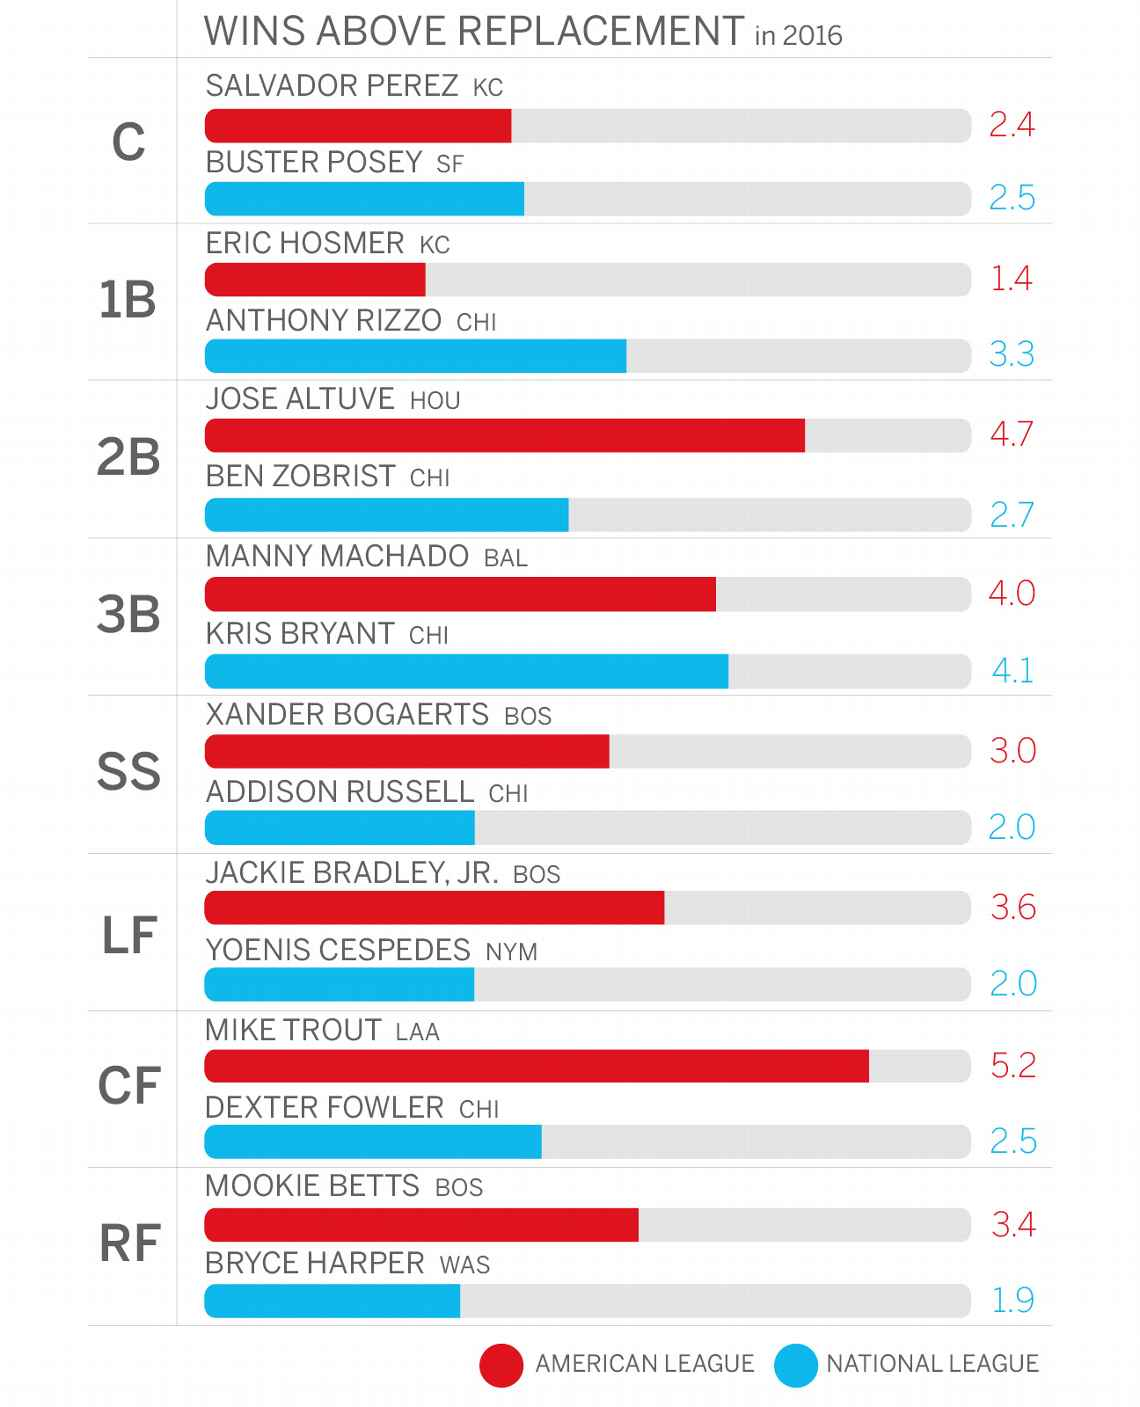 To compare the AL and NL All-Star starting lineups, I compared each player to his counterpart using the wins above replacement statistic.